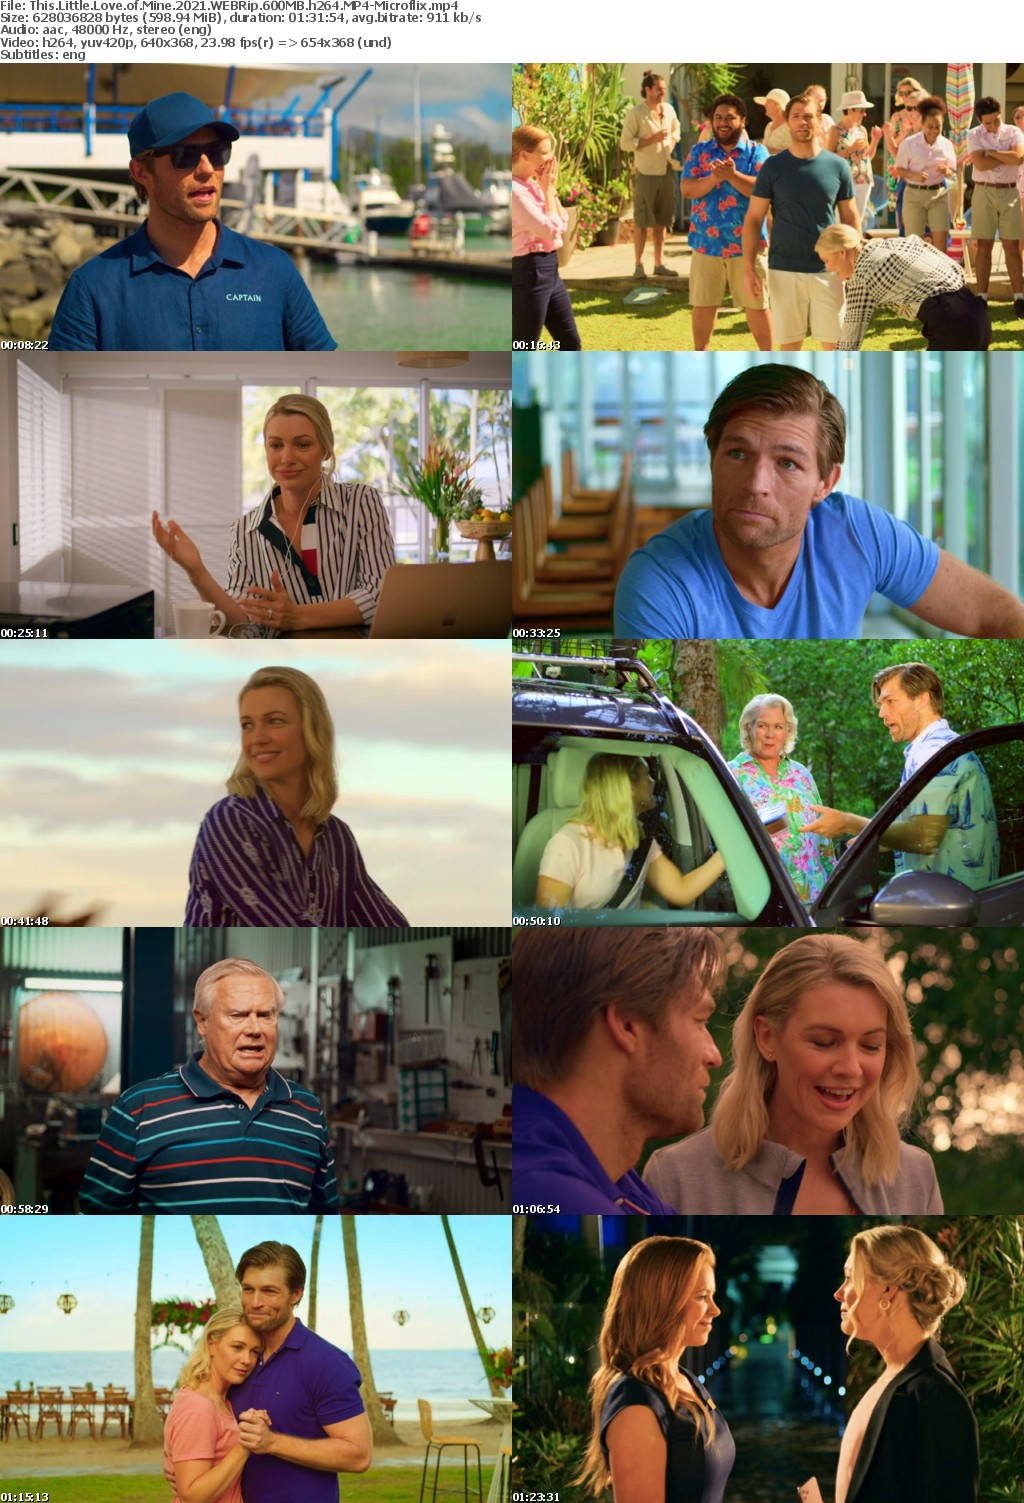 This Little Love of Mine 2021 WEBRip 600MB h264 MP4-Microflix